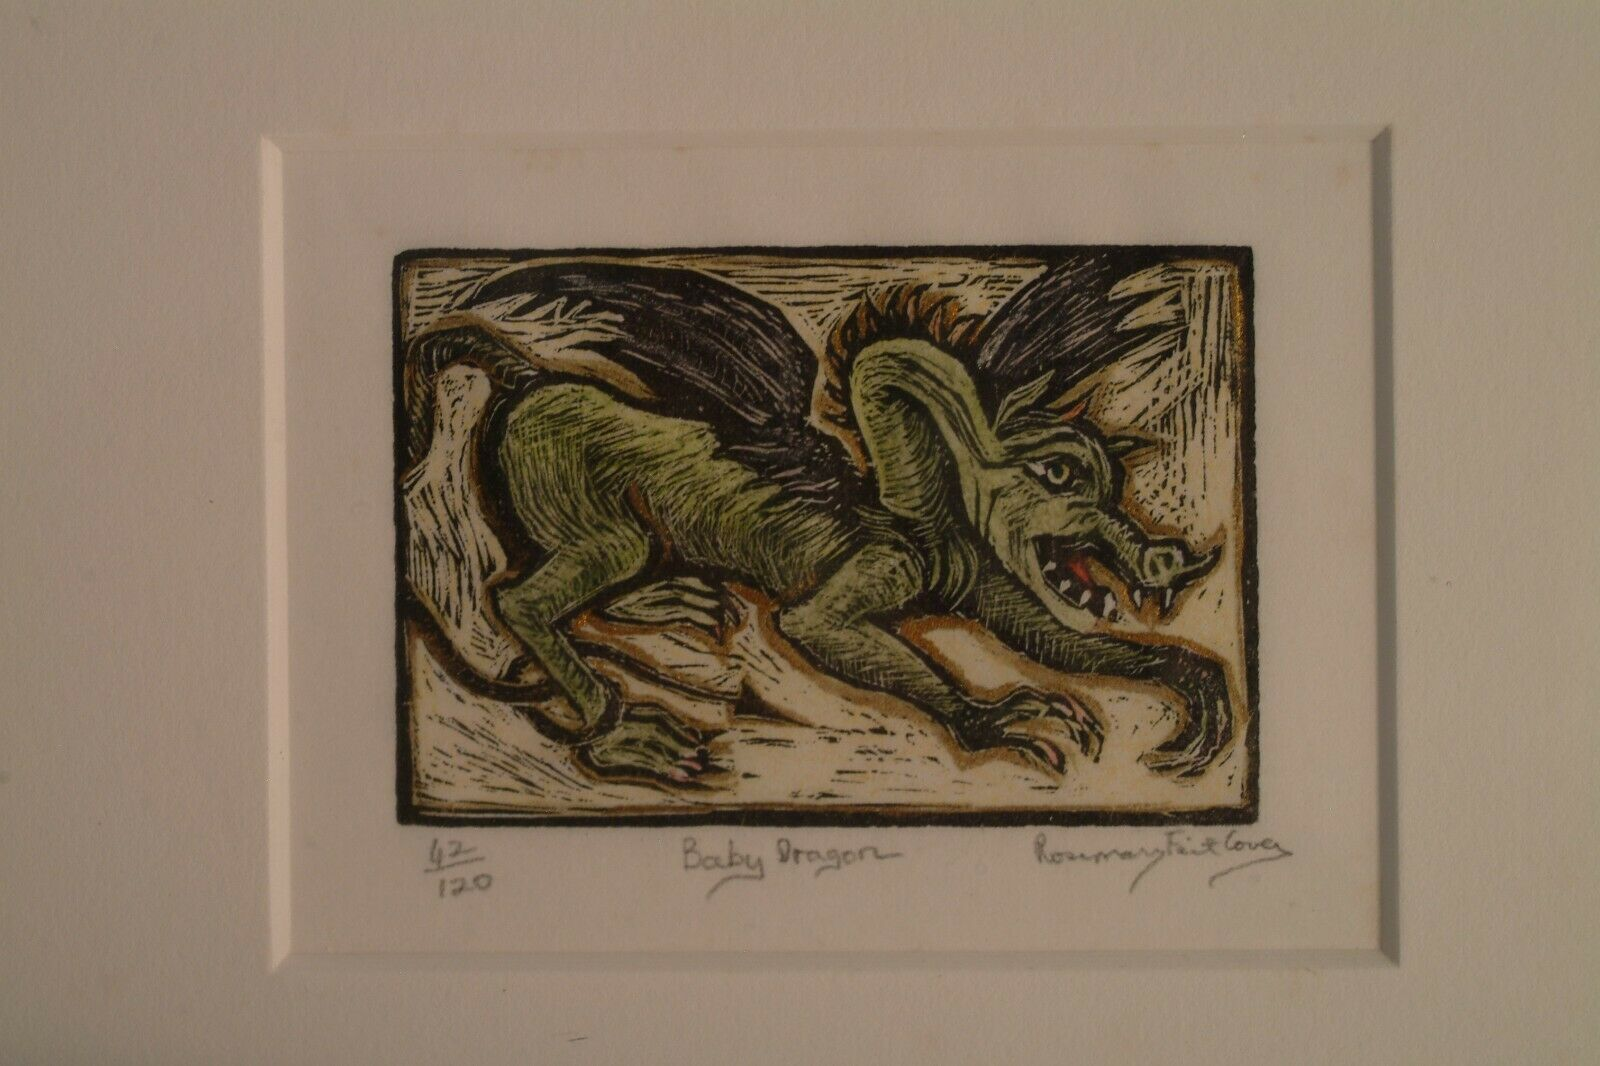 Rare, Early Work Of Rosemary Feit Covey, Wood Engraving, Baby Dragon Framed - $125.00